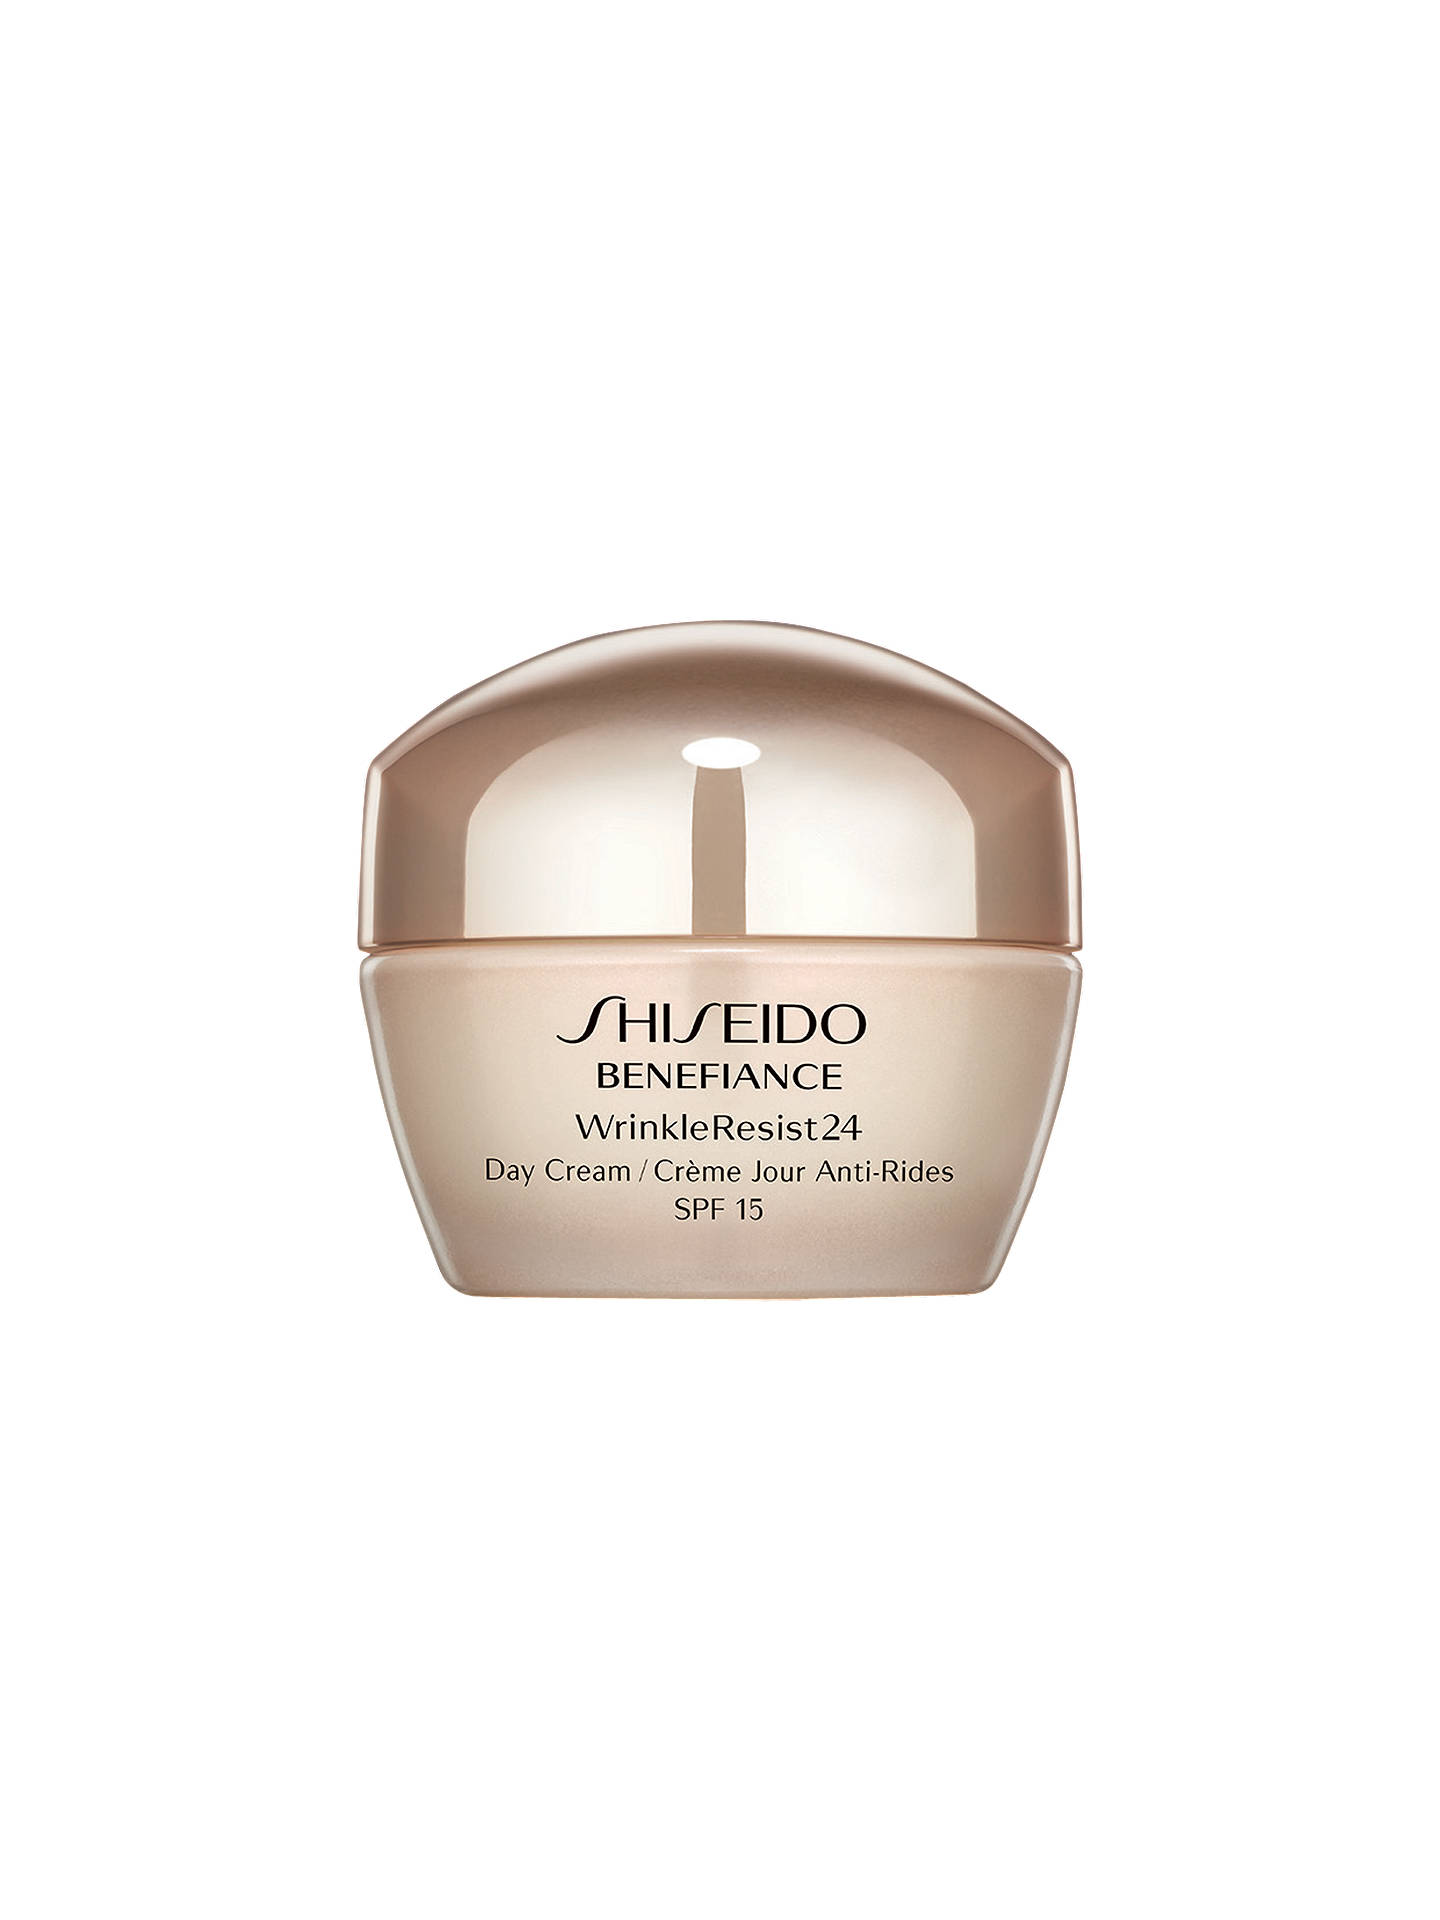 Buy Shiseido Benefiance WrinkleResist24 Day Cream, 50ml Online at johnlewis.com